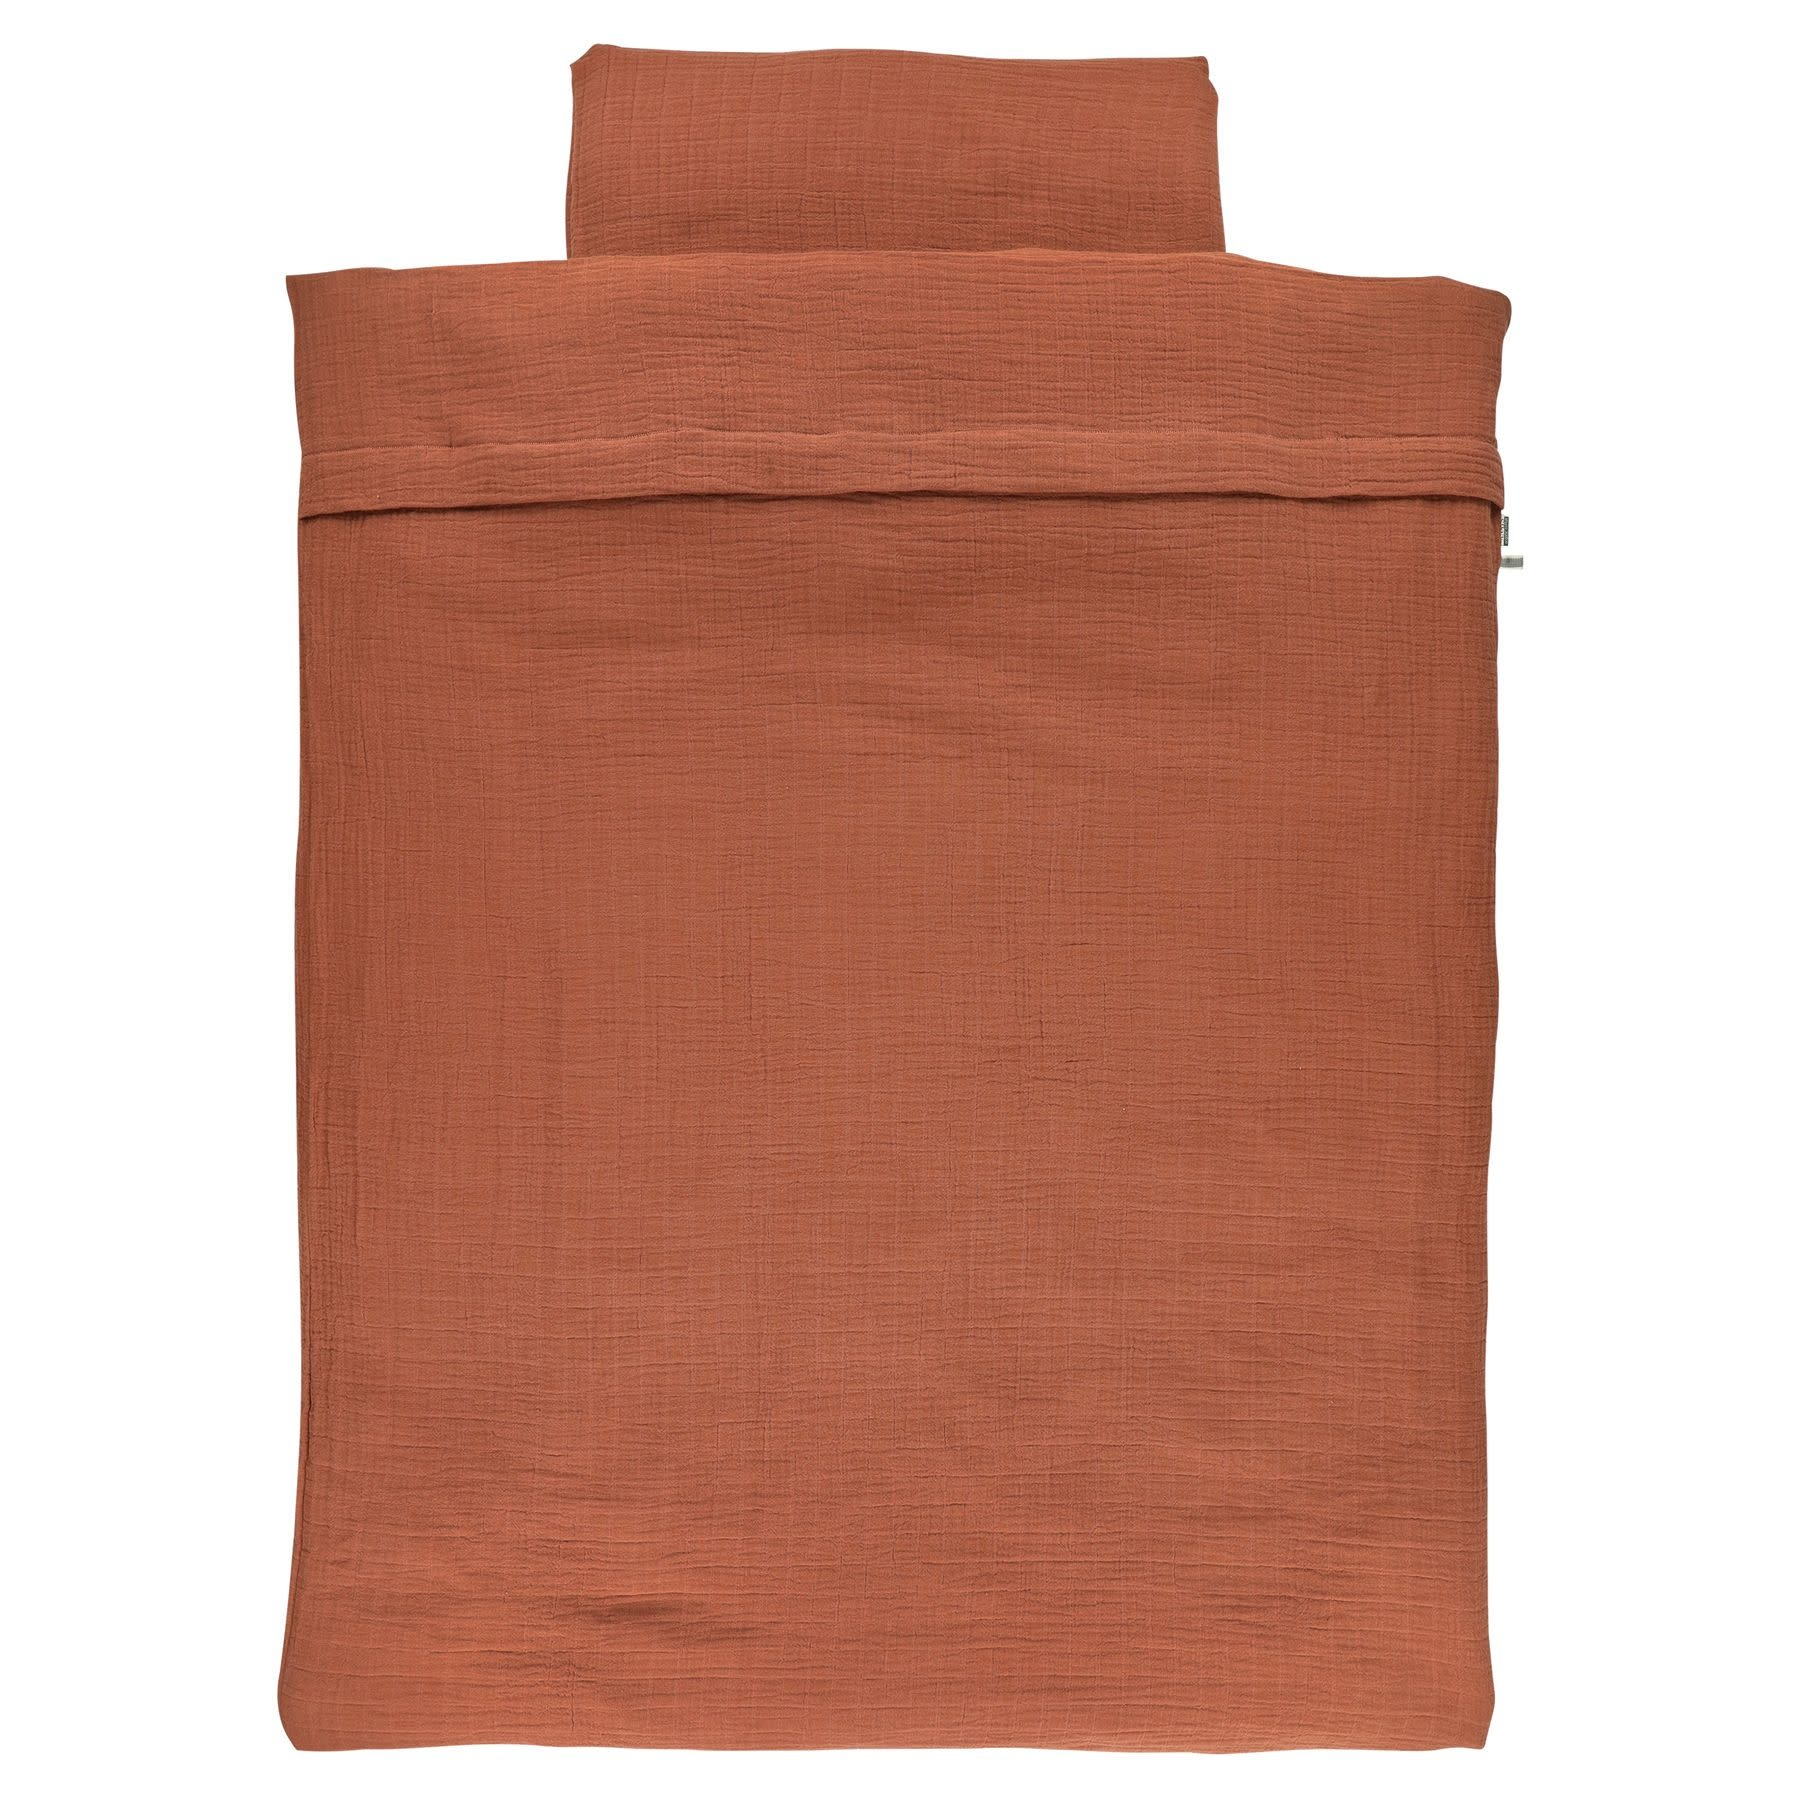 Les Rêves d'Anais Cot Duvet Cover Bliss Rust